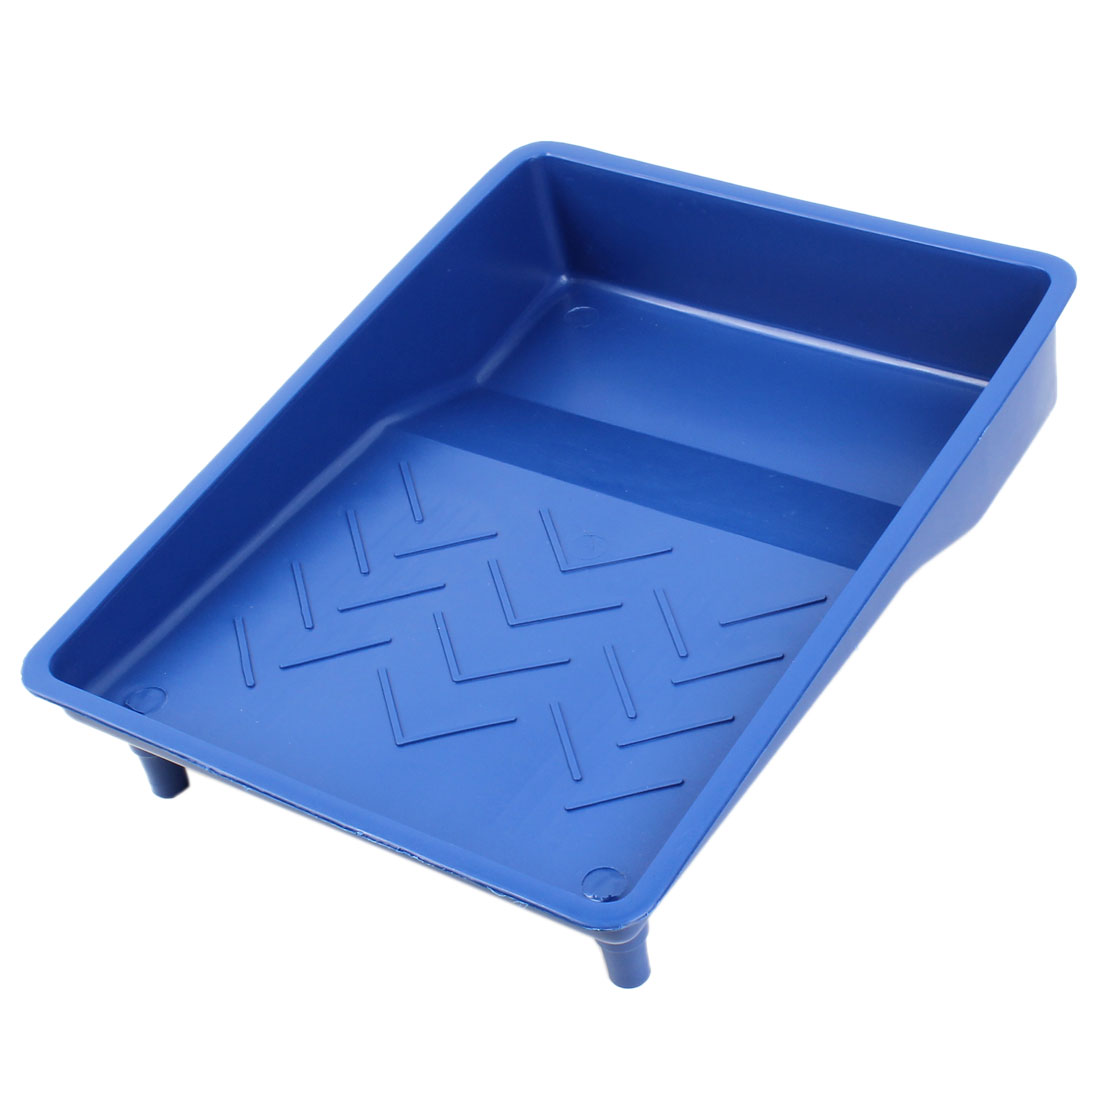 "Blue Plastic Painting Decorating 9"" Roller Tray Paint Brush Holder"